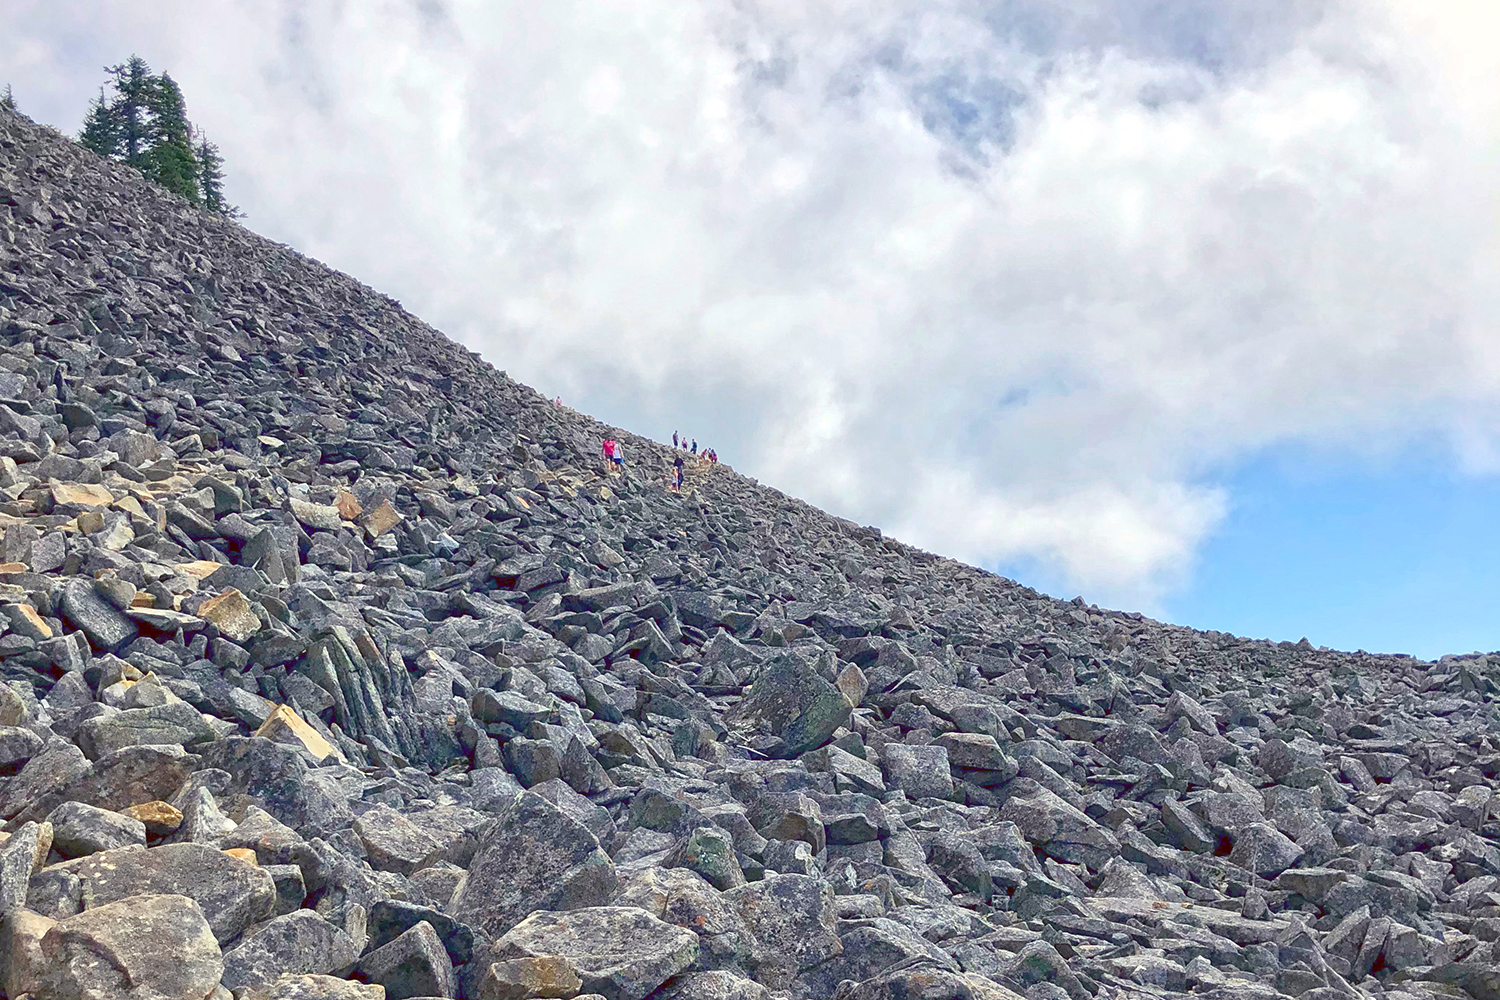 <p>The tree-covered trail suddenly opens up to blue skies and a massive boulder field. At first sight, it's hard to determine just how large – but look close and spot a few people making their way to the top (Image:{&nbsp;}Rachael A. Jones / Seattle Refined){&nbsp;}</p>